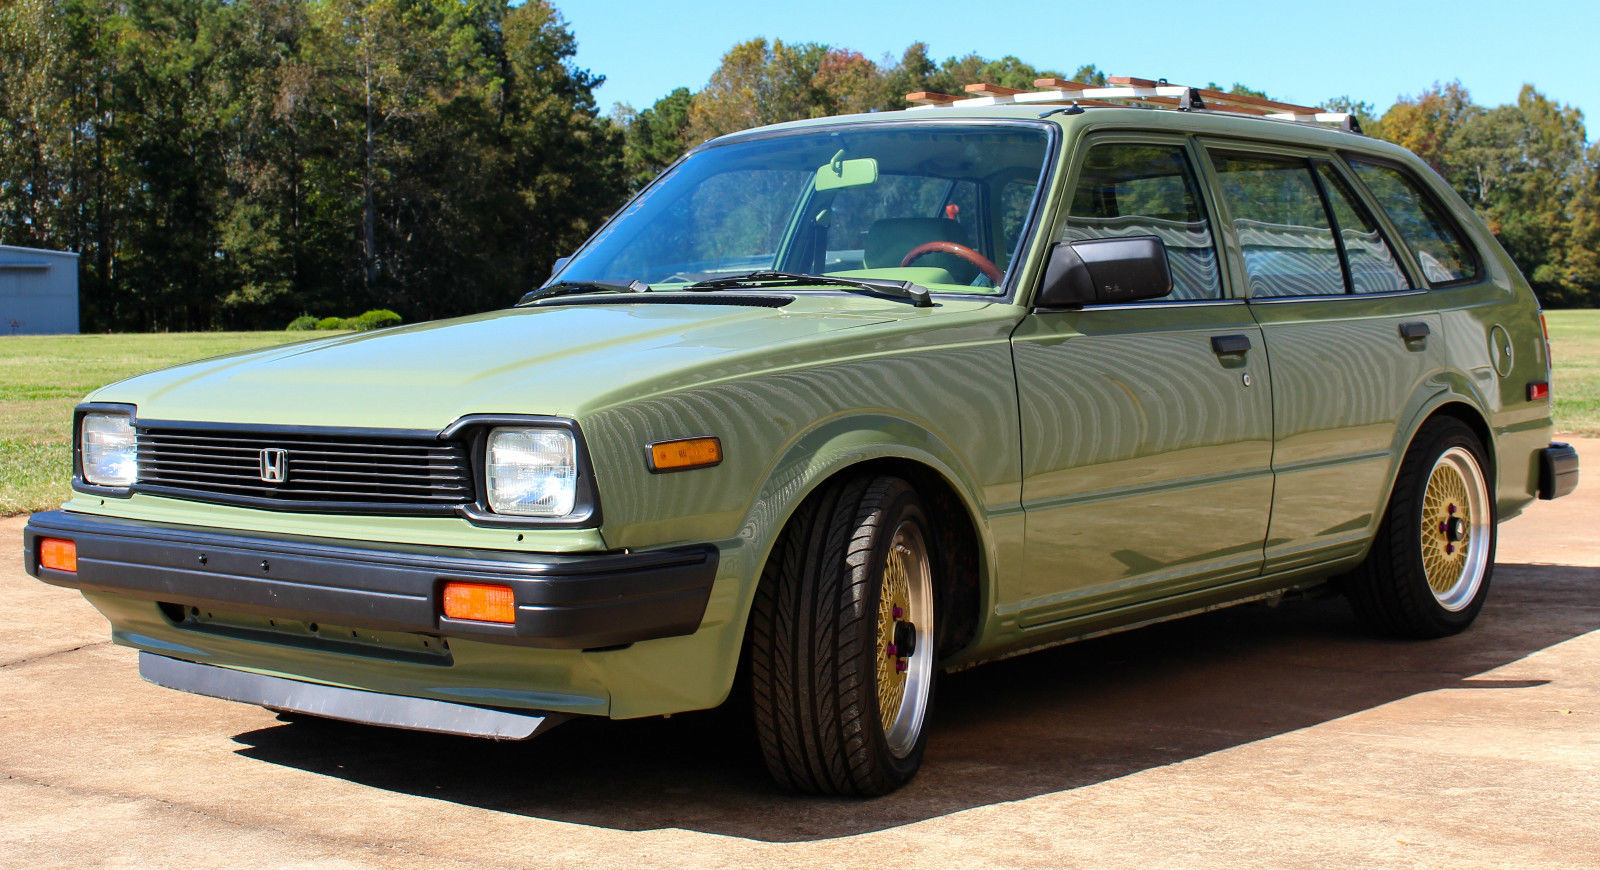 For Sale: 1983 Honda Civic Wagon with a B18b – Engine Swap Depot